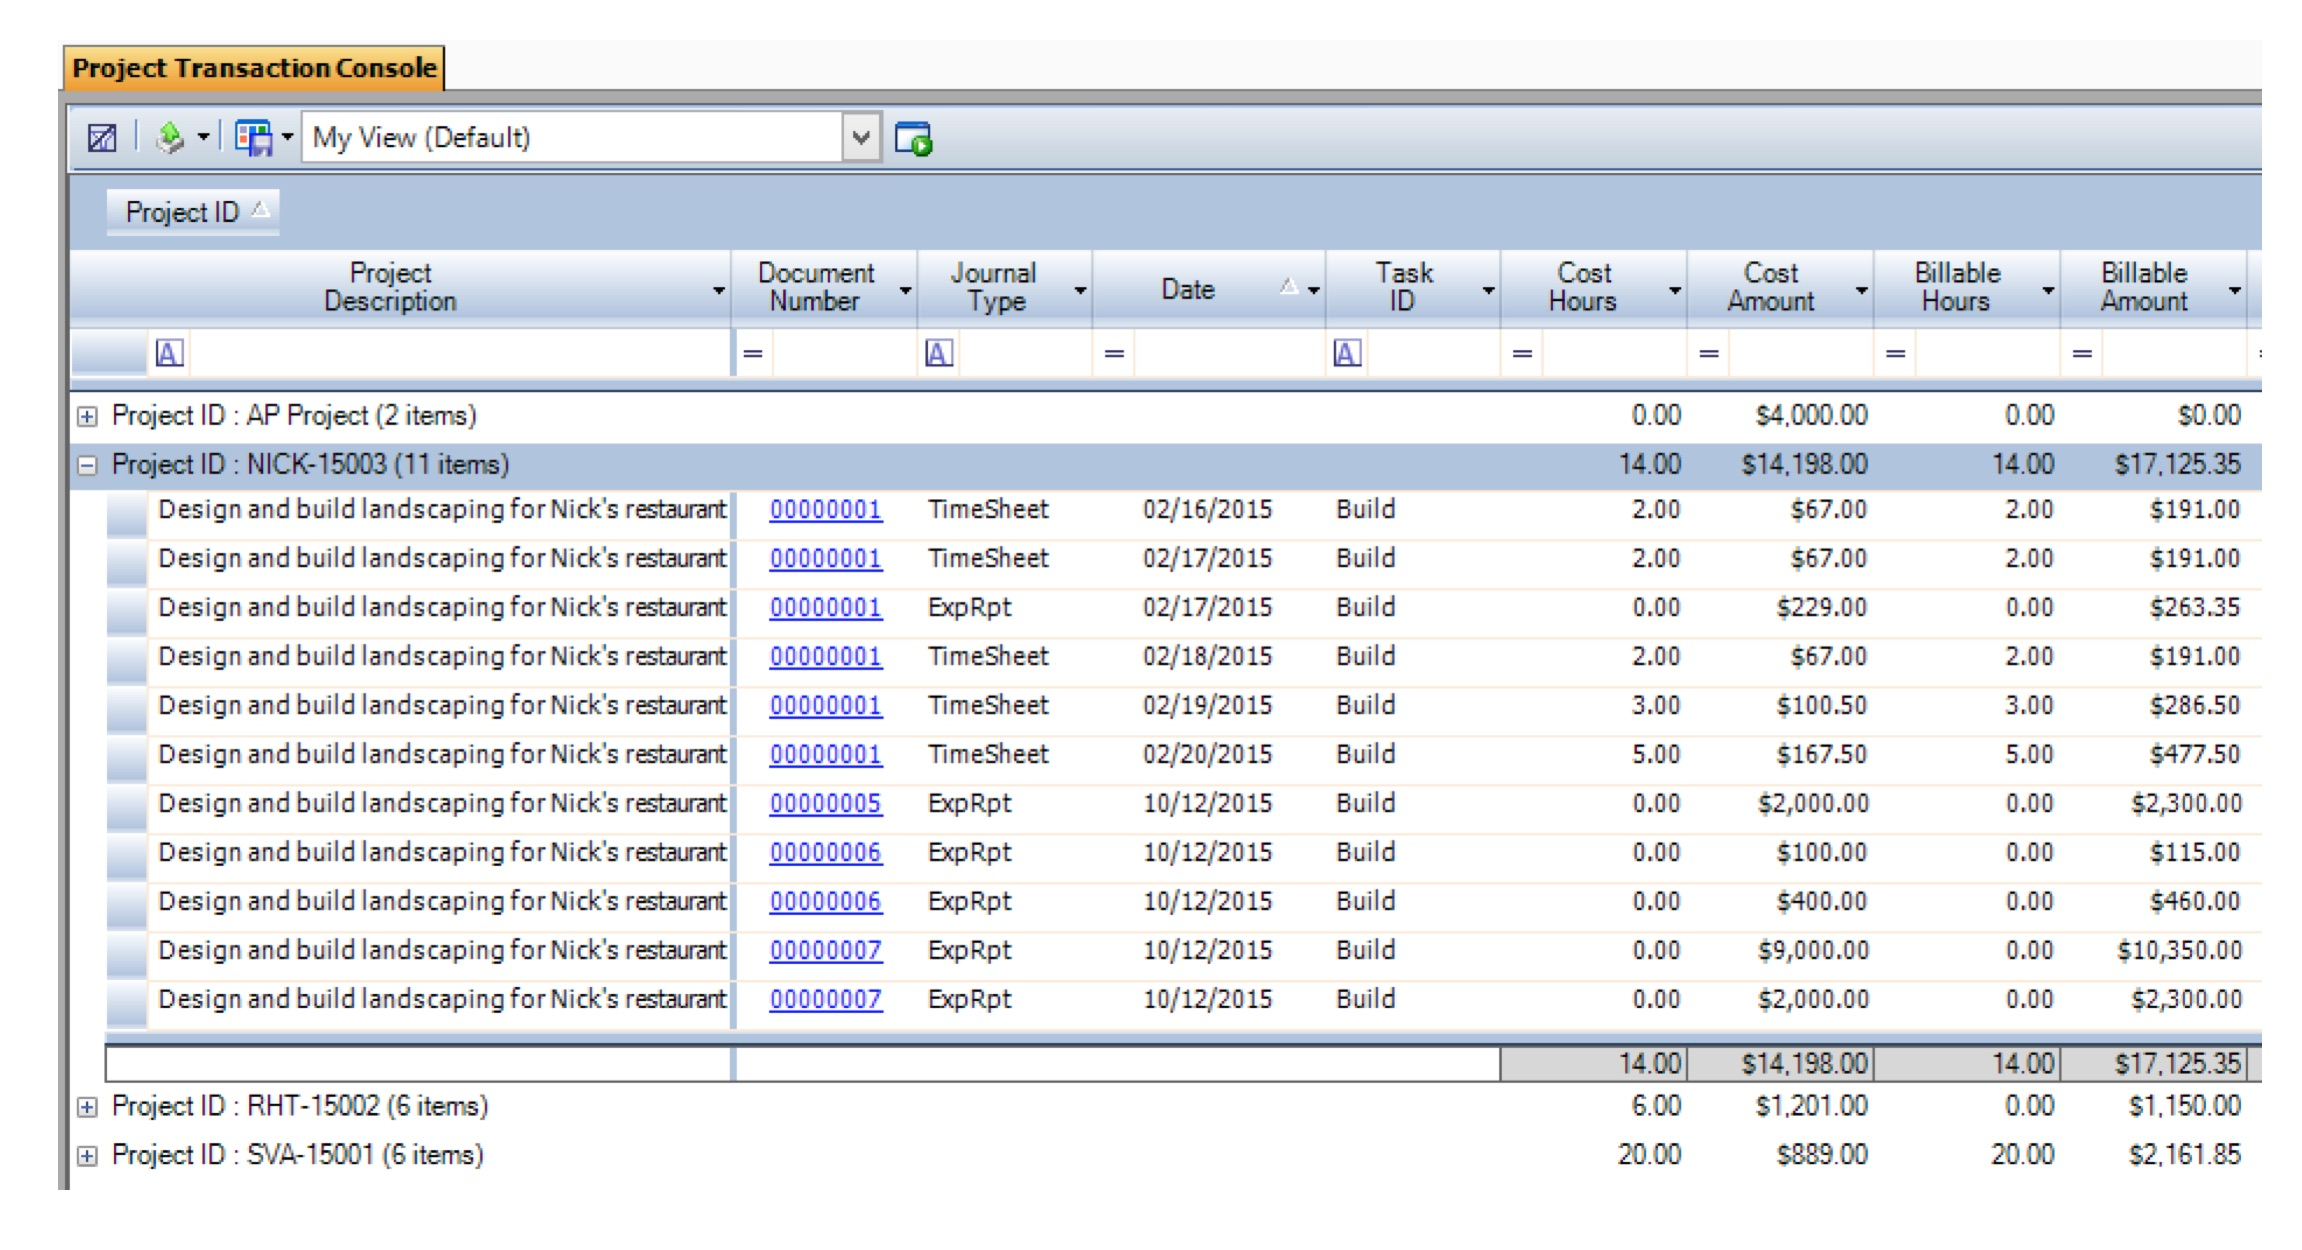 Project Transaction Console